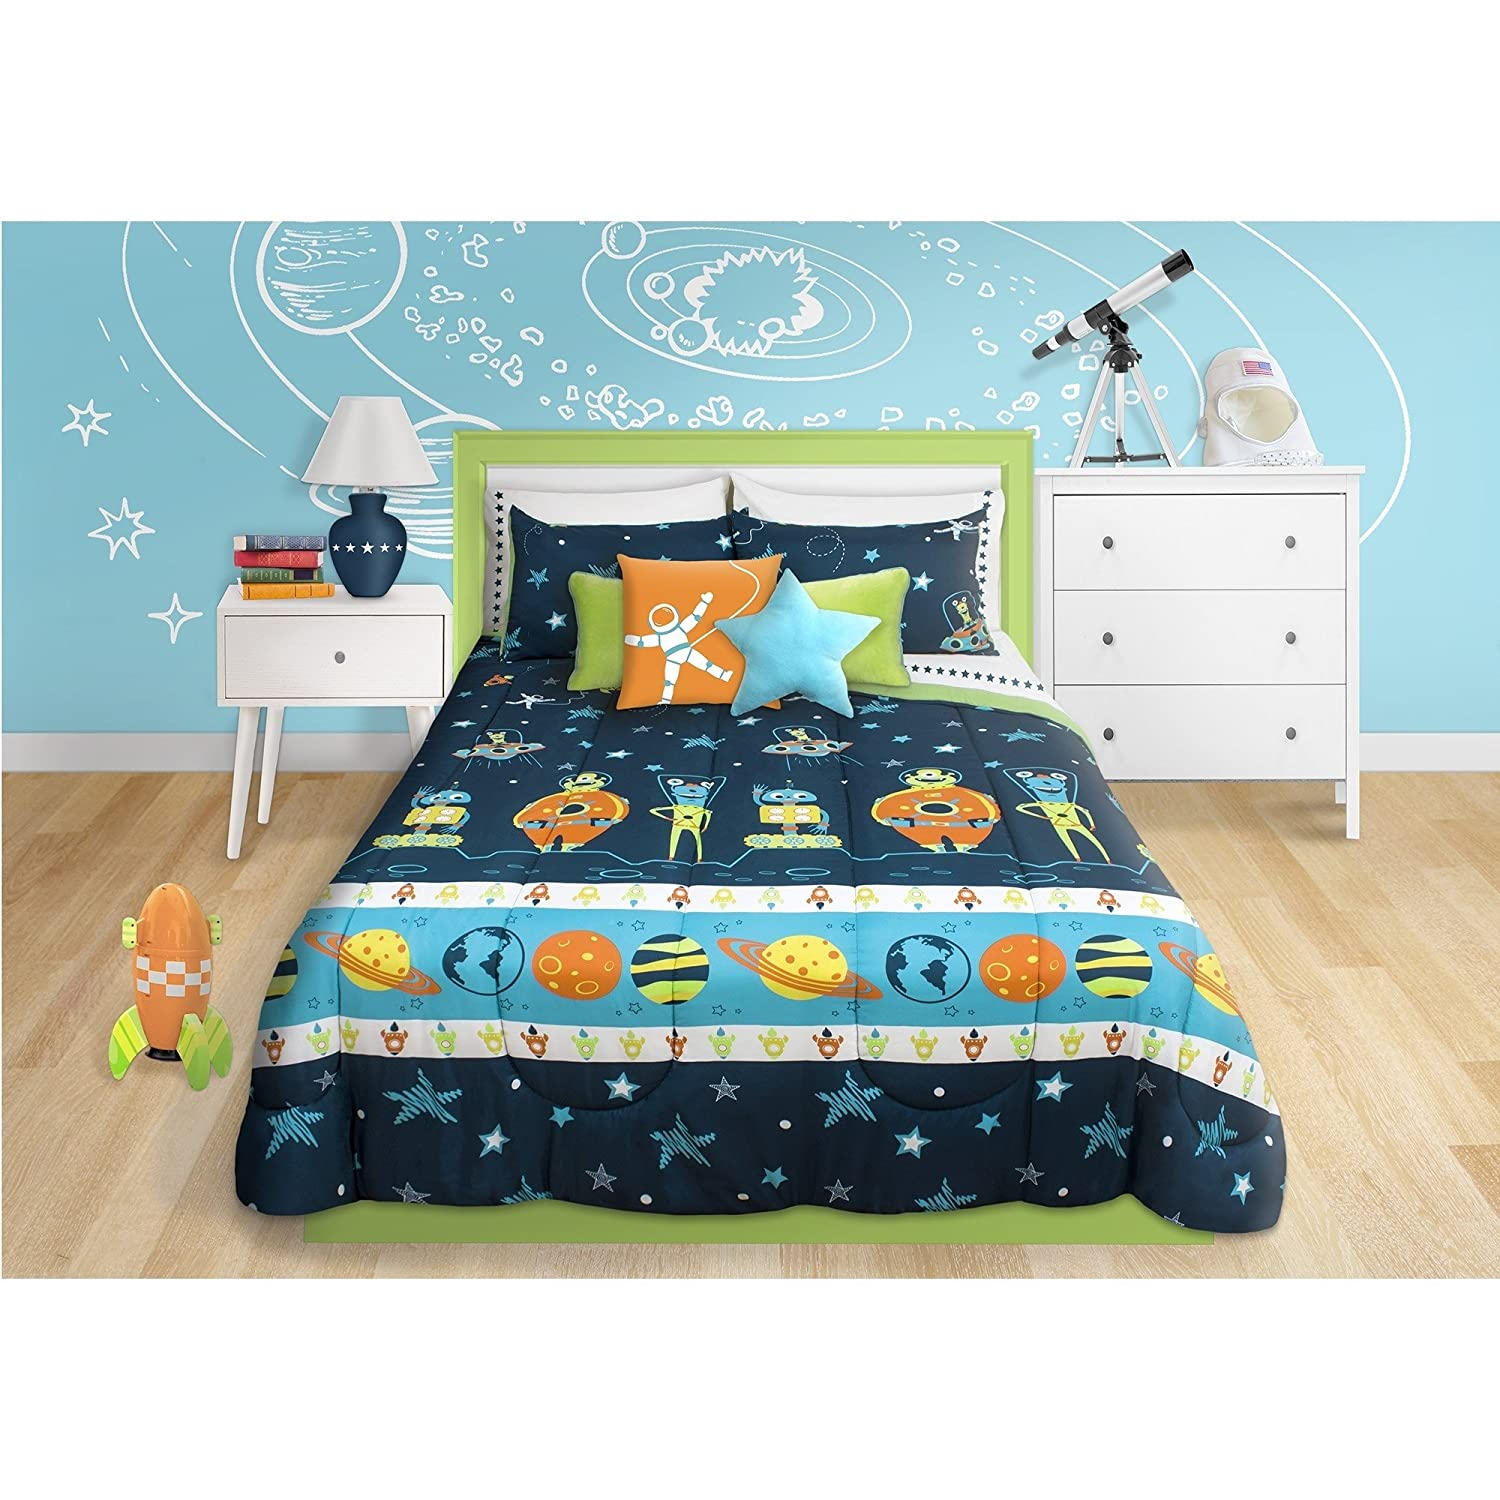 2 Piece Boys Blue Multi Outer Space Themed Comforter Twin Set, Beautiful Planets Stripe, Rocket Ships, Spacesuits, Robots, Stars, Polka Dots Print, Fun Imaginative Space Adventure Bedding, Polyester